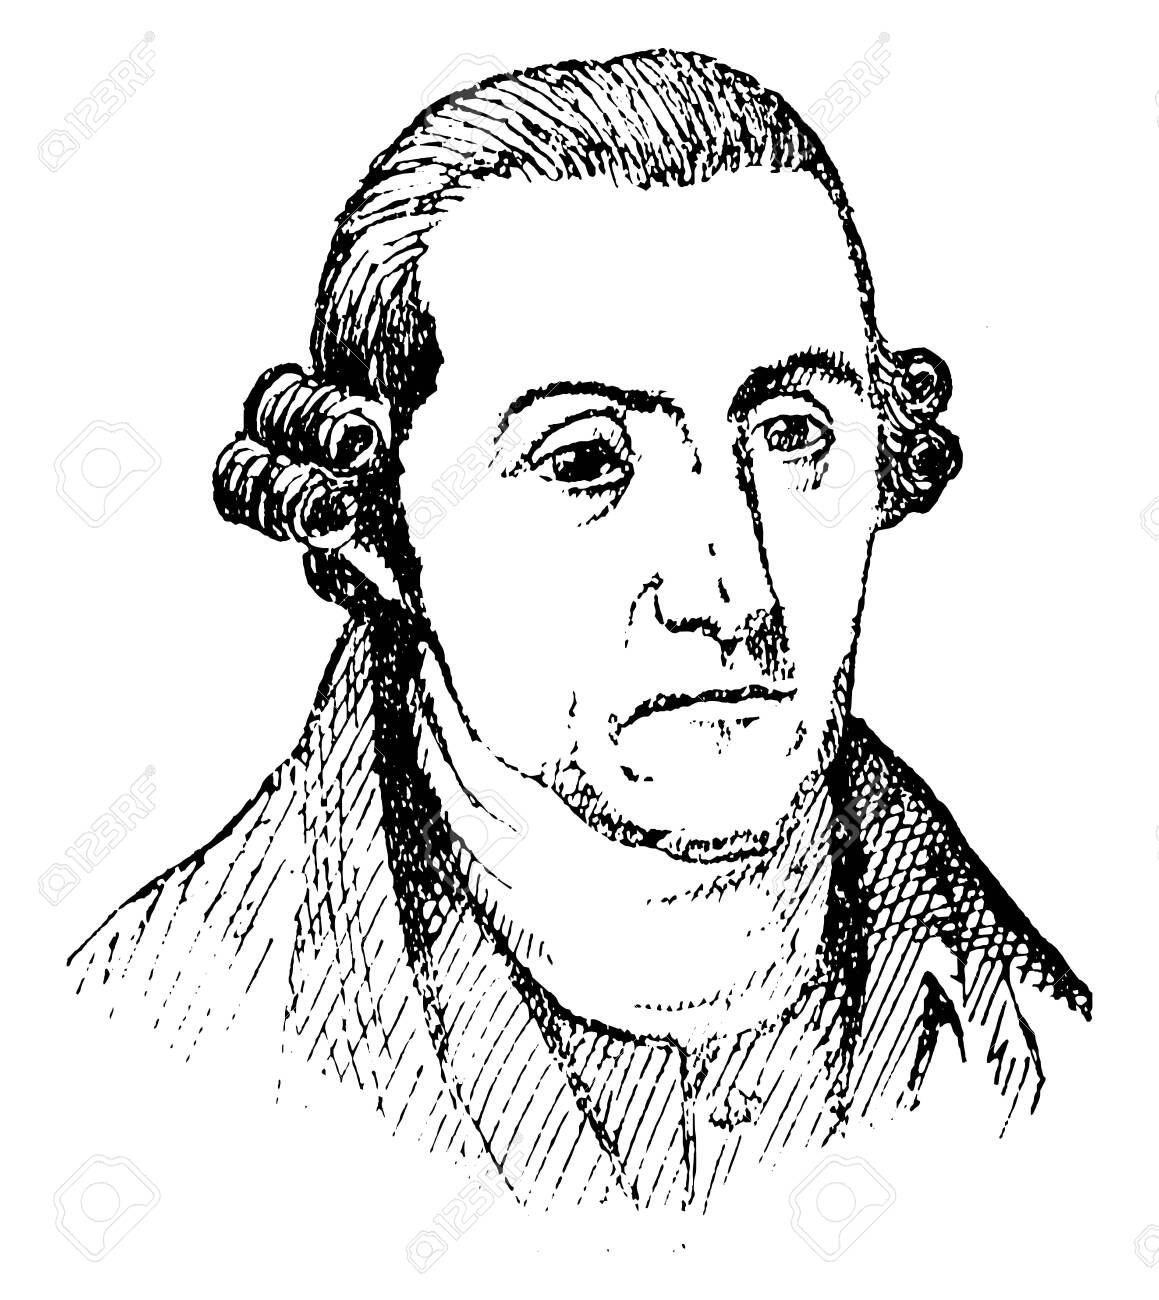 Patrick Henry, 1736-1799, he was an American attorney, planter, orator, and the first and sixth post-colonial governor of Virginia, famous for his declaration to the Second Virginia Convention, vintage line drawing or engraving illustration - 133630100